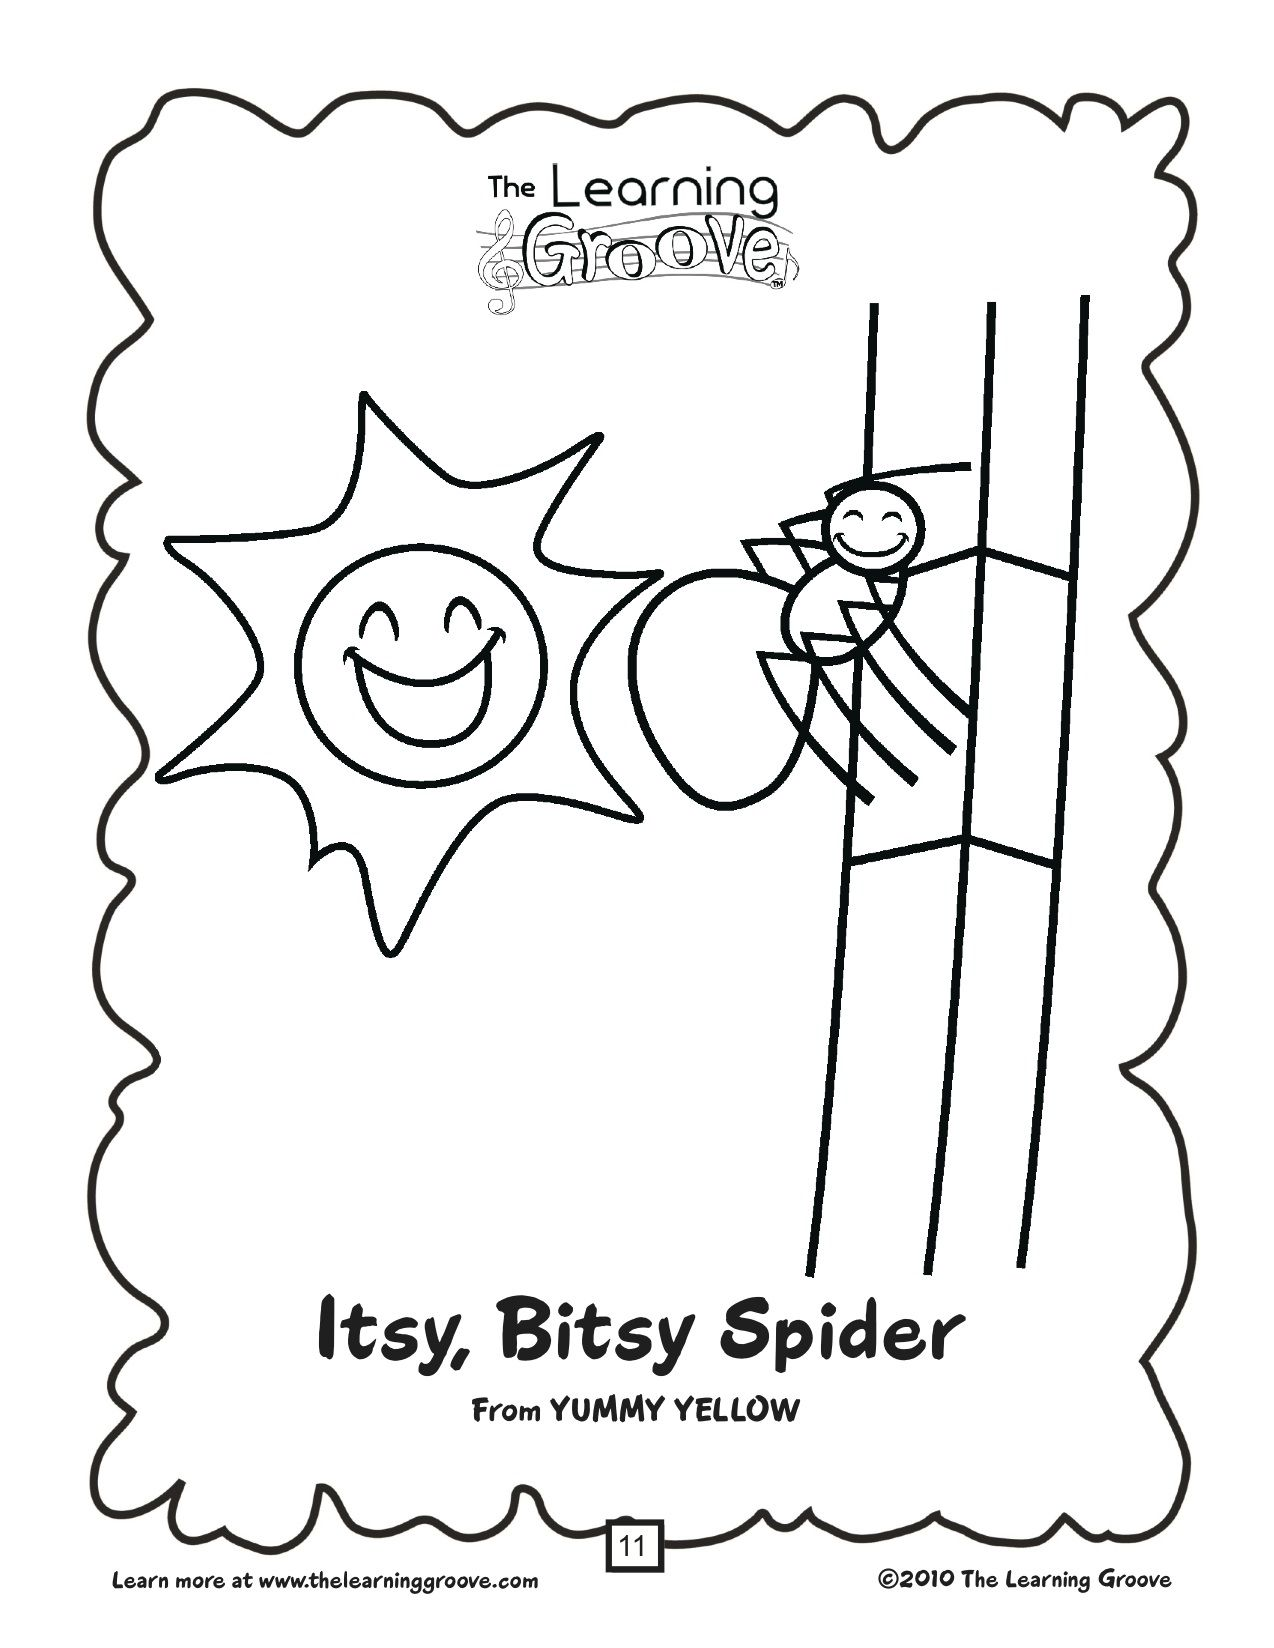 Did You Ever Wonder What Happened To The Itsy Bitsy Spider